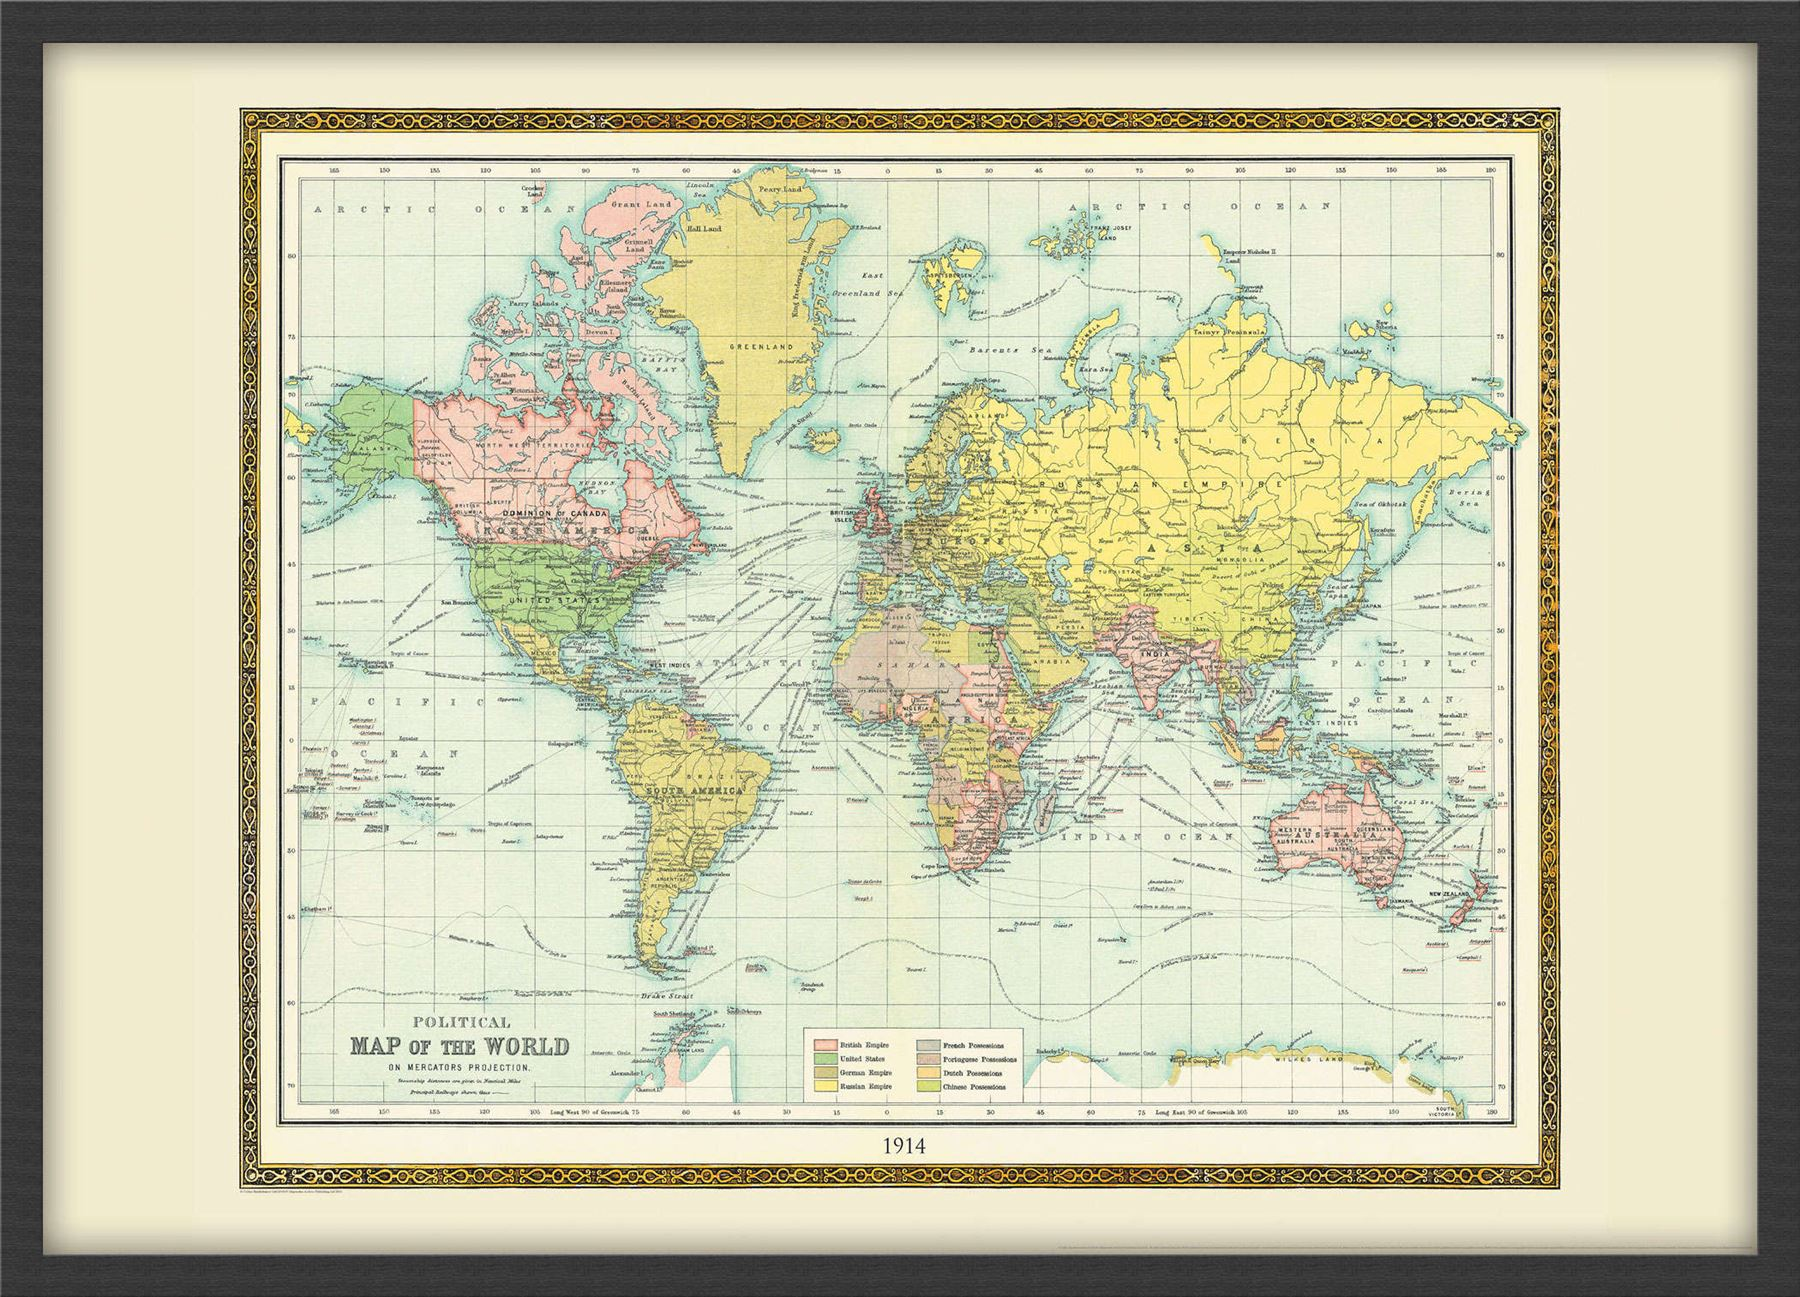 Vintage bartholomew political world map 1914 poster with size vintage bartholomew political world map 1914 poster with gumiabroncs Choice Image